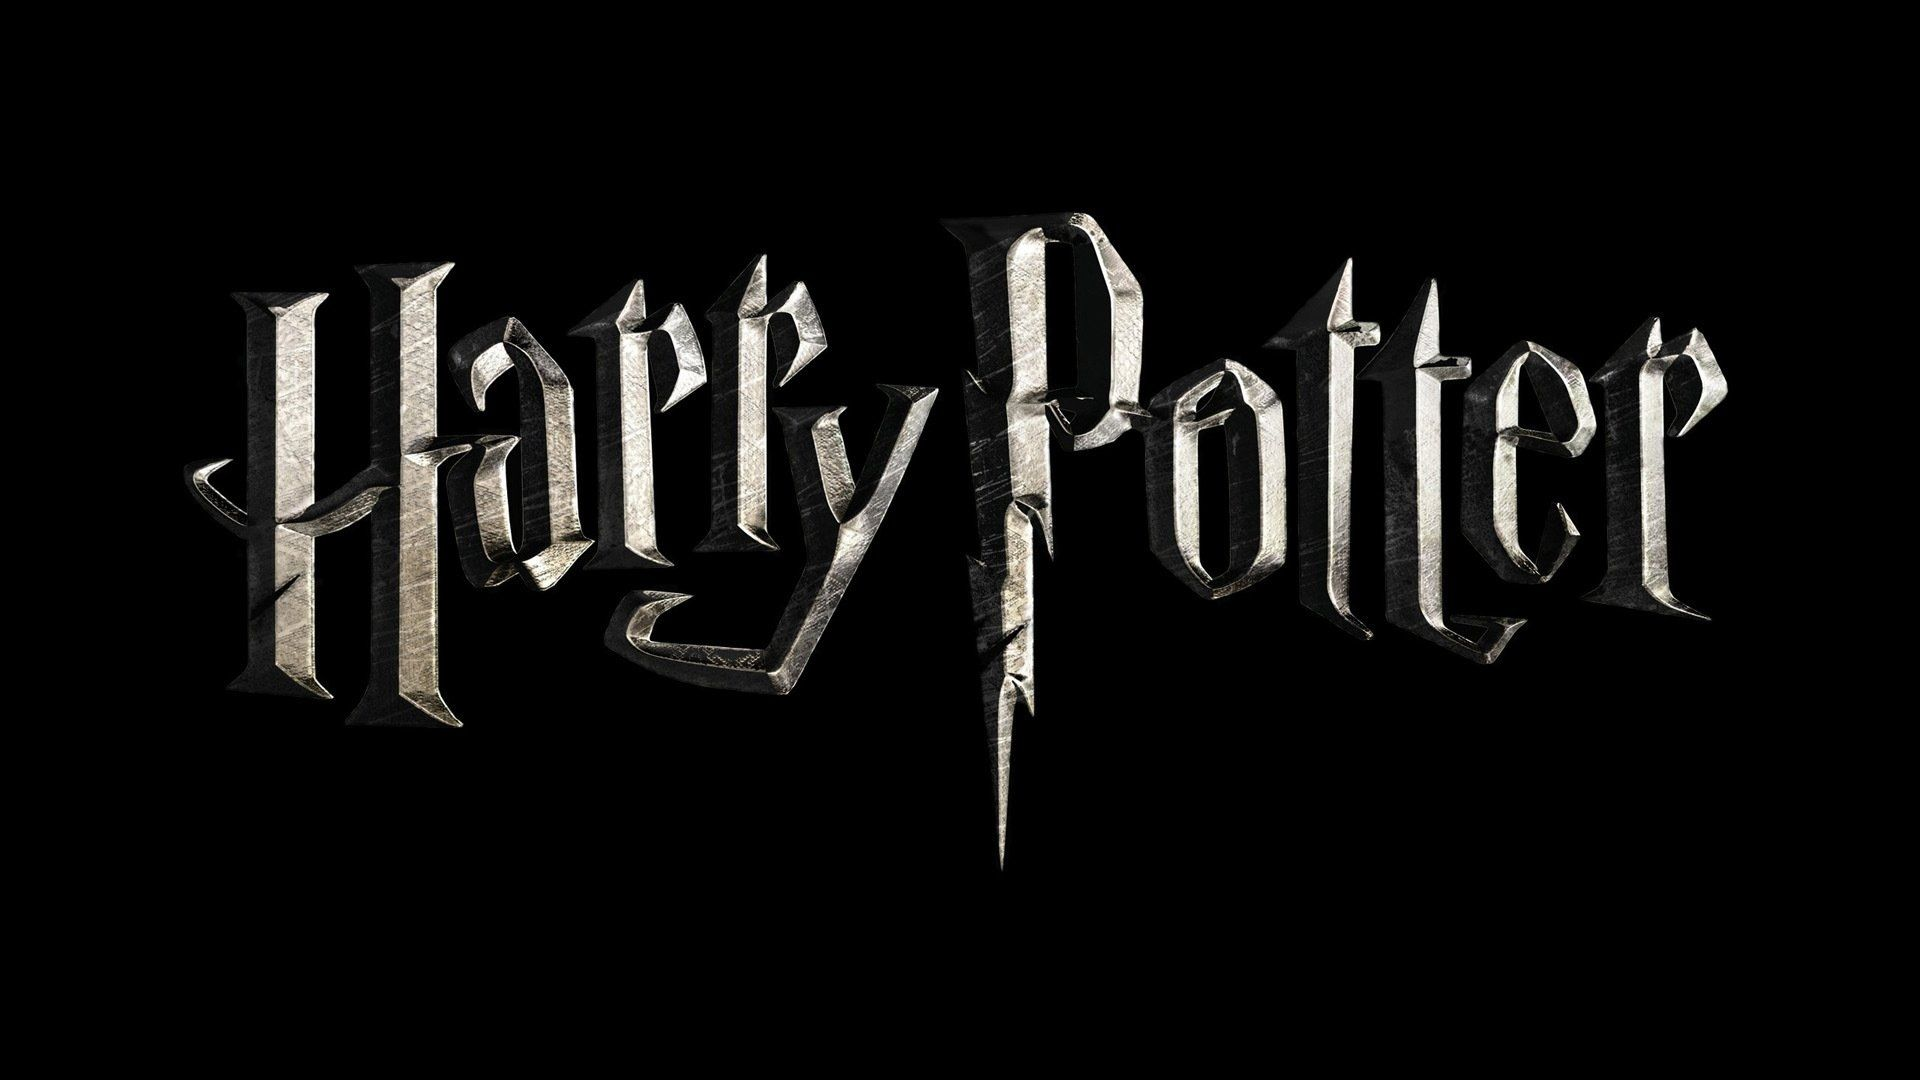 10 Best Harry Potter Logo Wallpaper Full Hd 1920 1080 For Pc Desktop Harry Potter Wallpaper Backgrounds Harry Potter Wallpaper Desktop Wallpaper Harry Potter